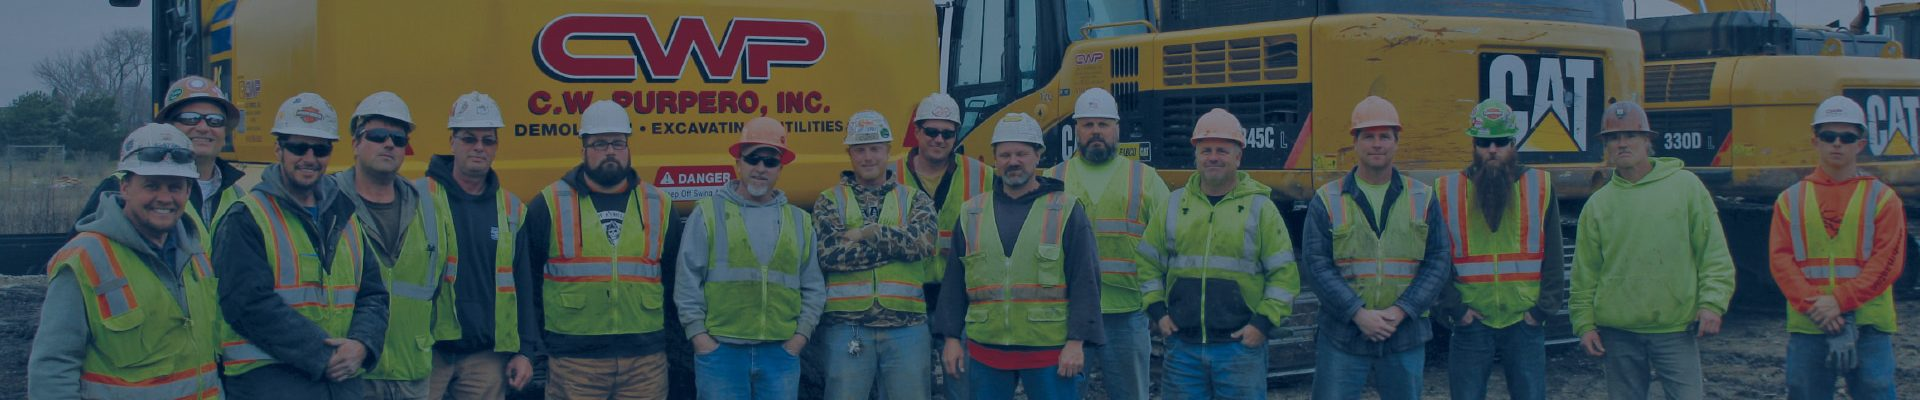 Construction Business Group